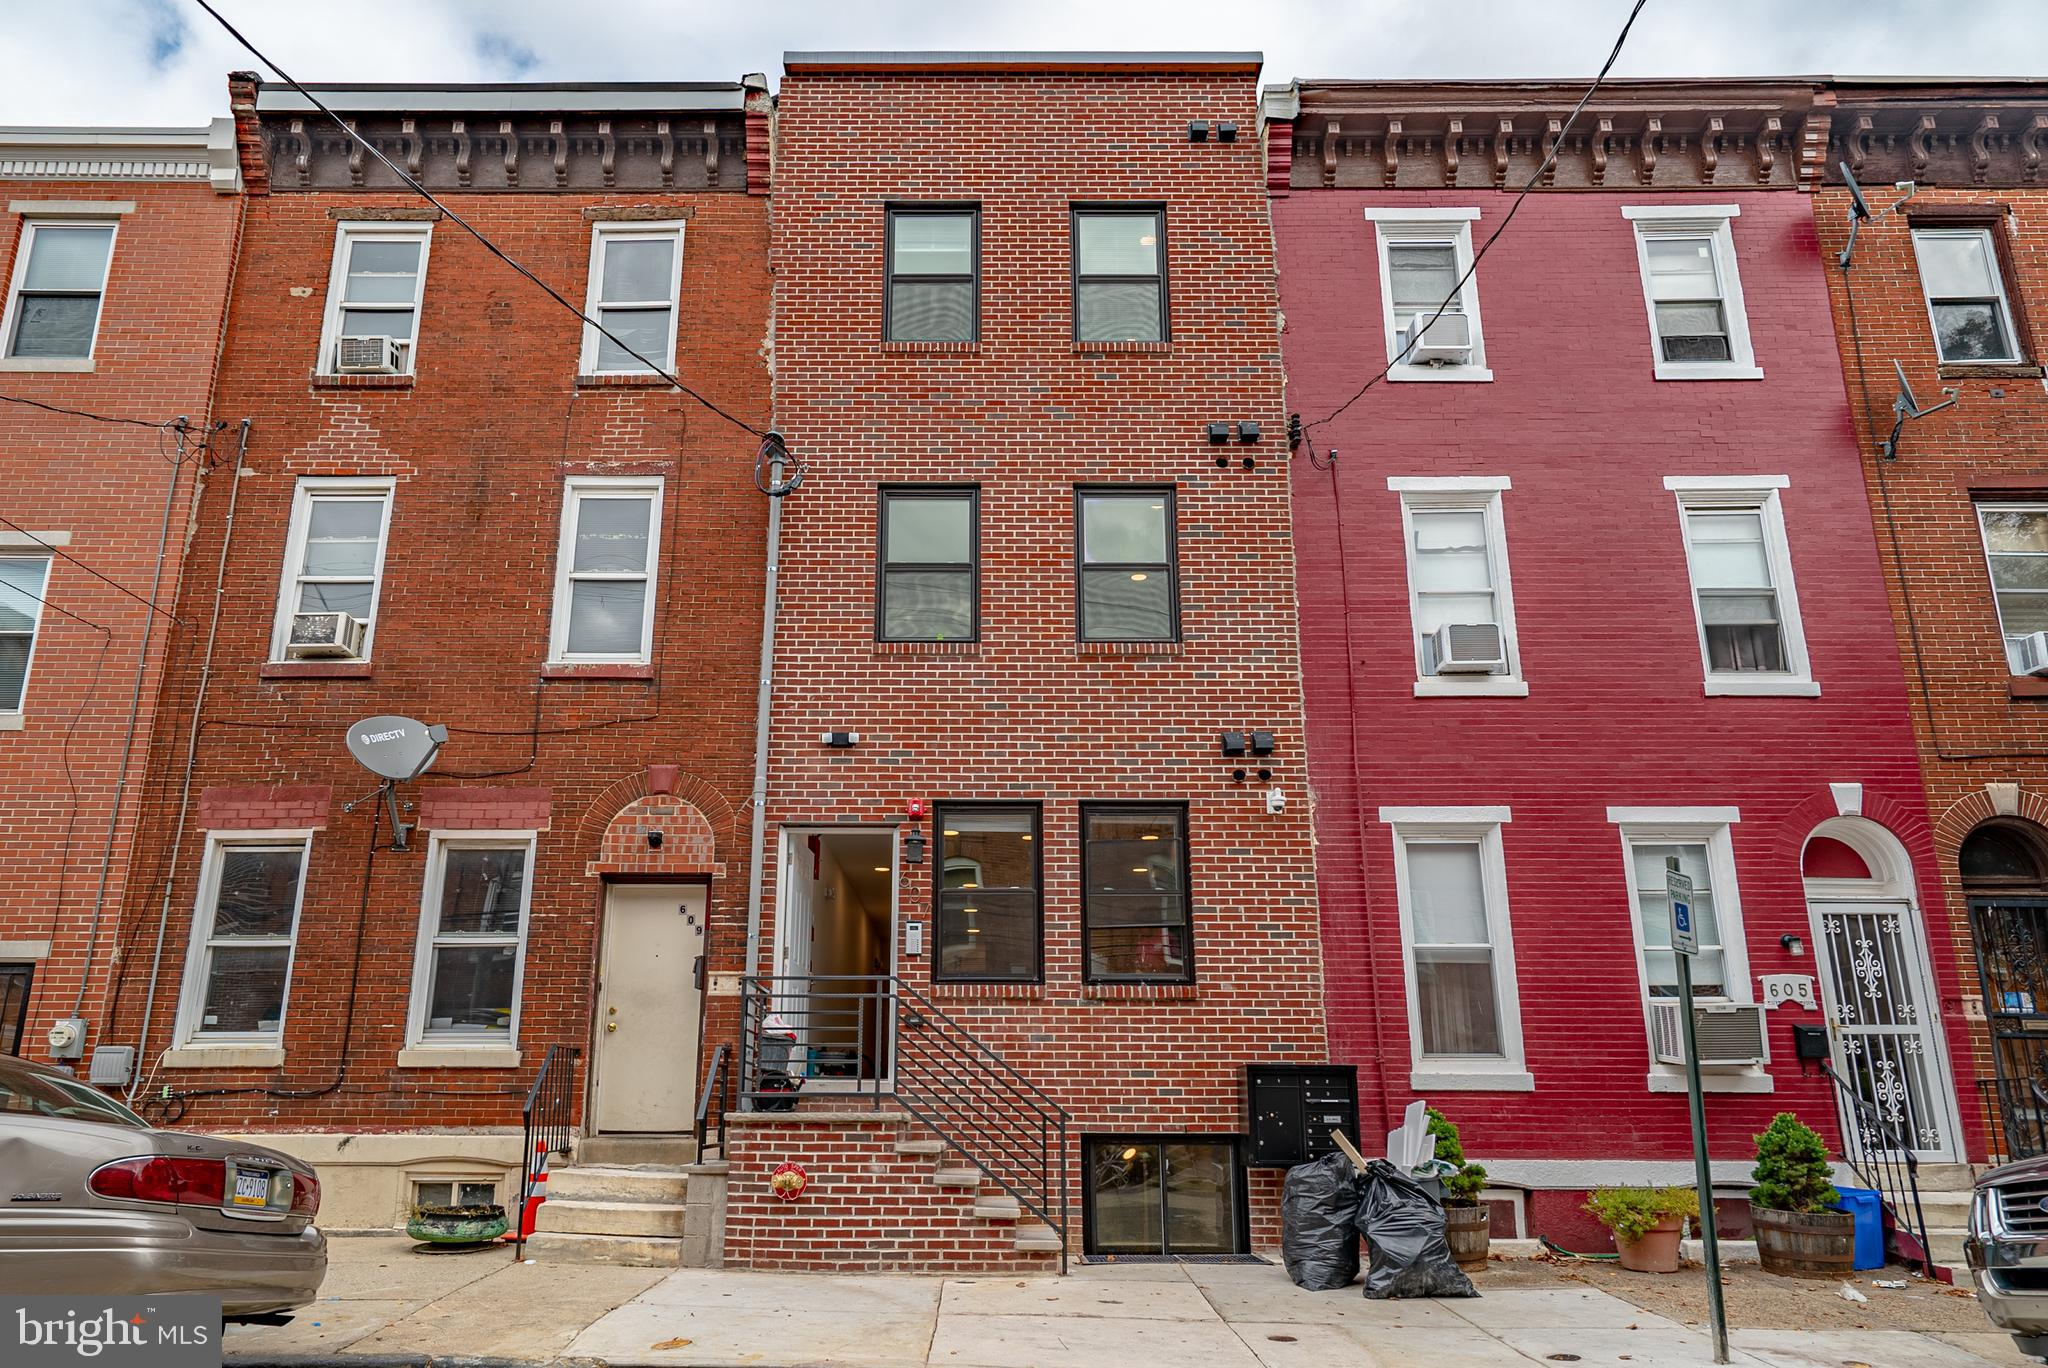 607 N 39TH STREET, PHILADELPHIA, PA 19104